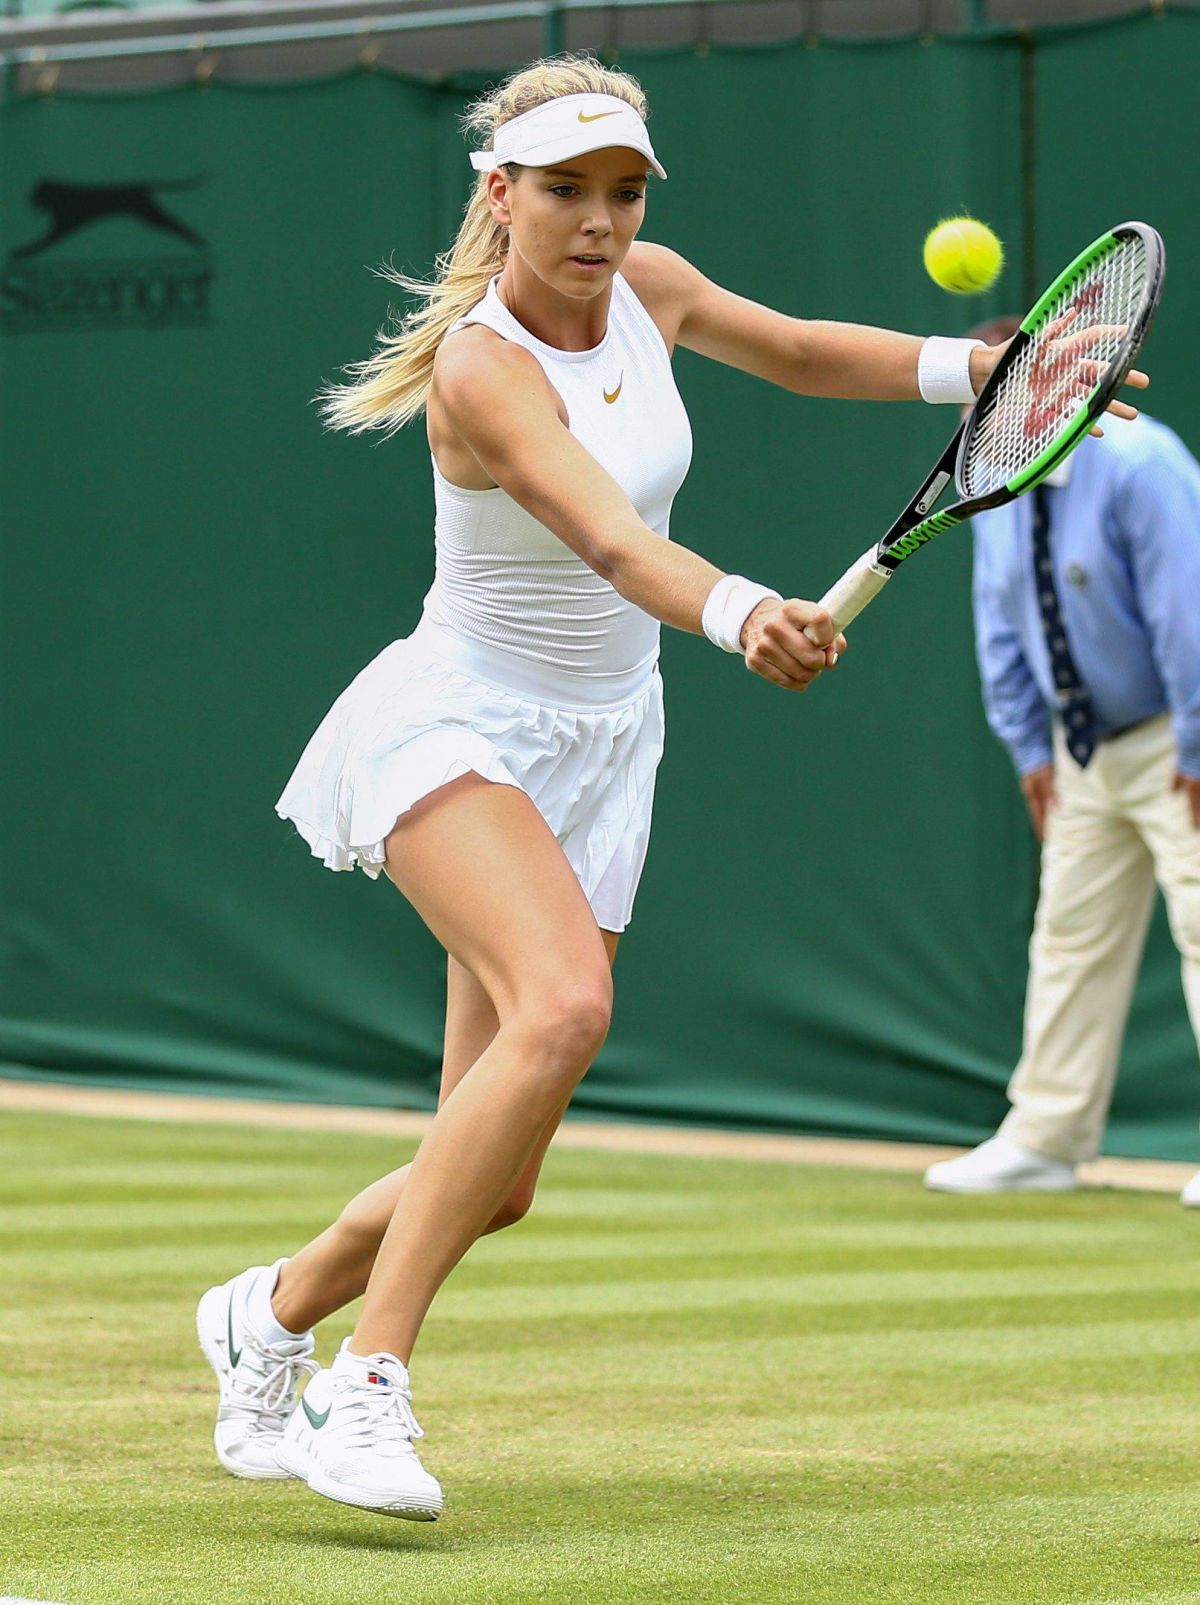 katie boulter - photo #24